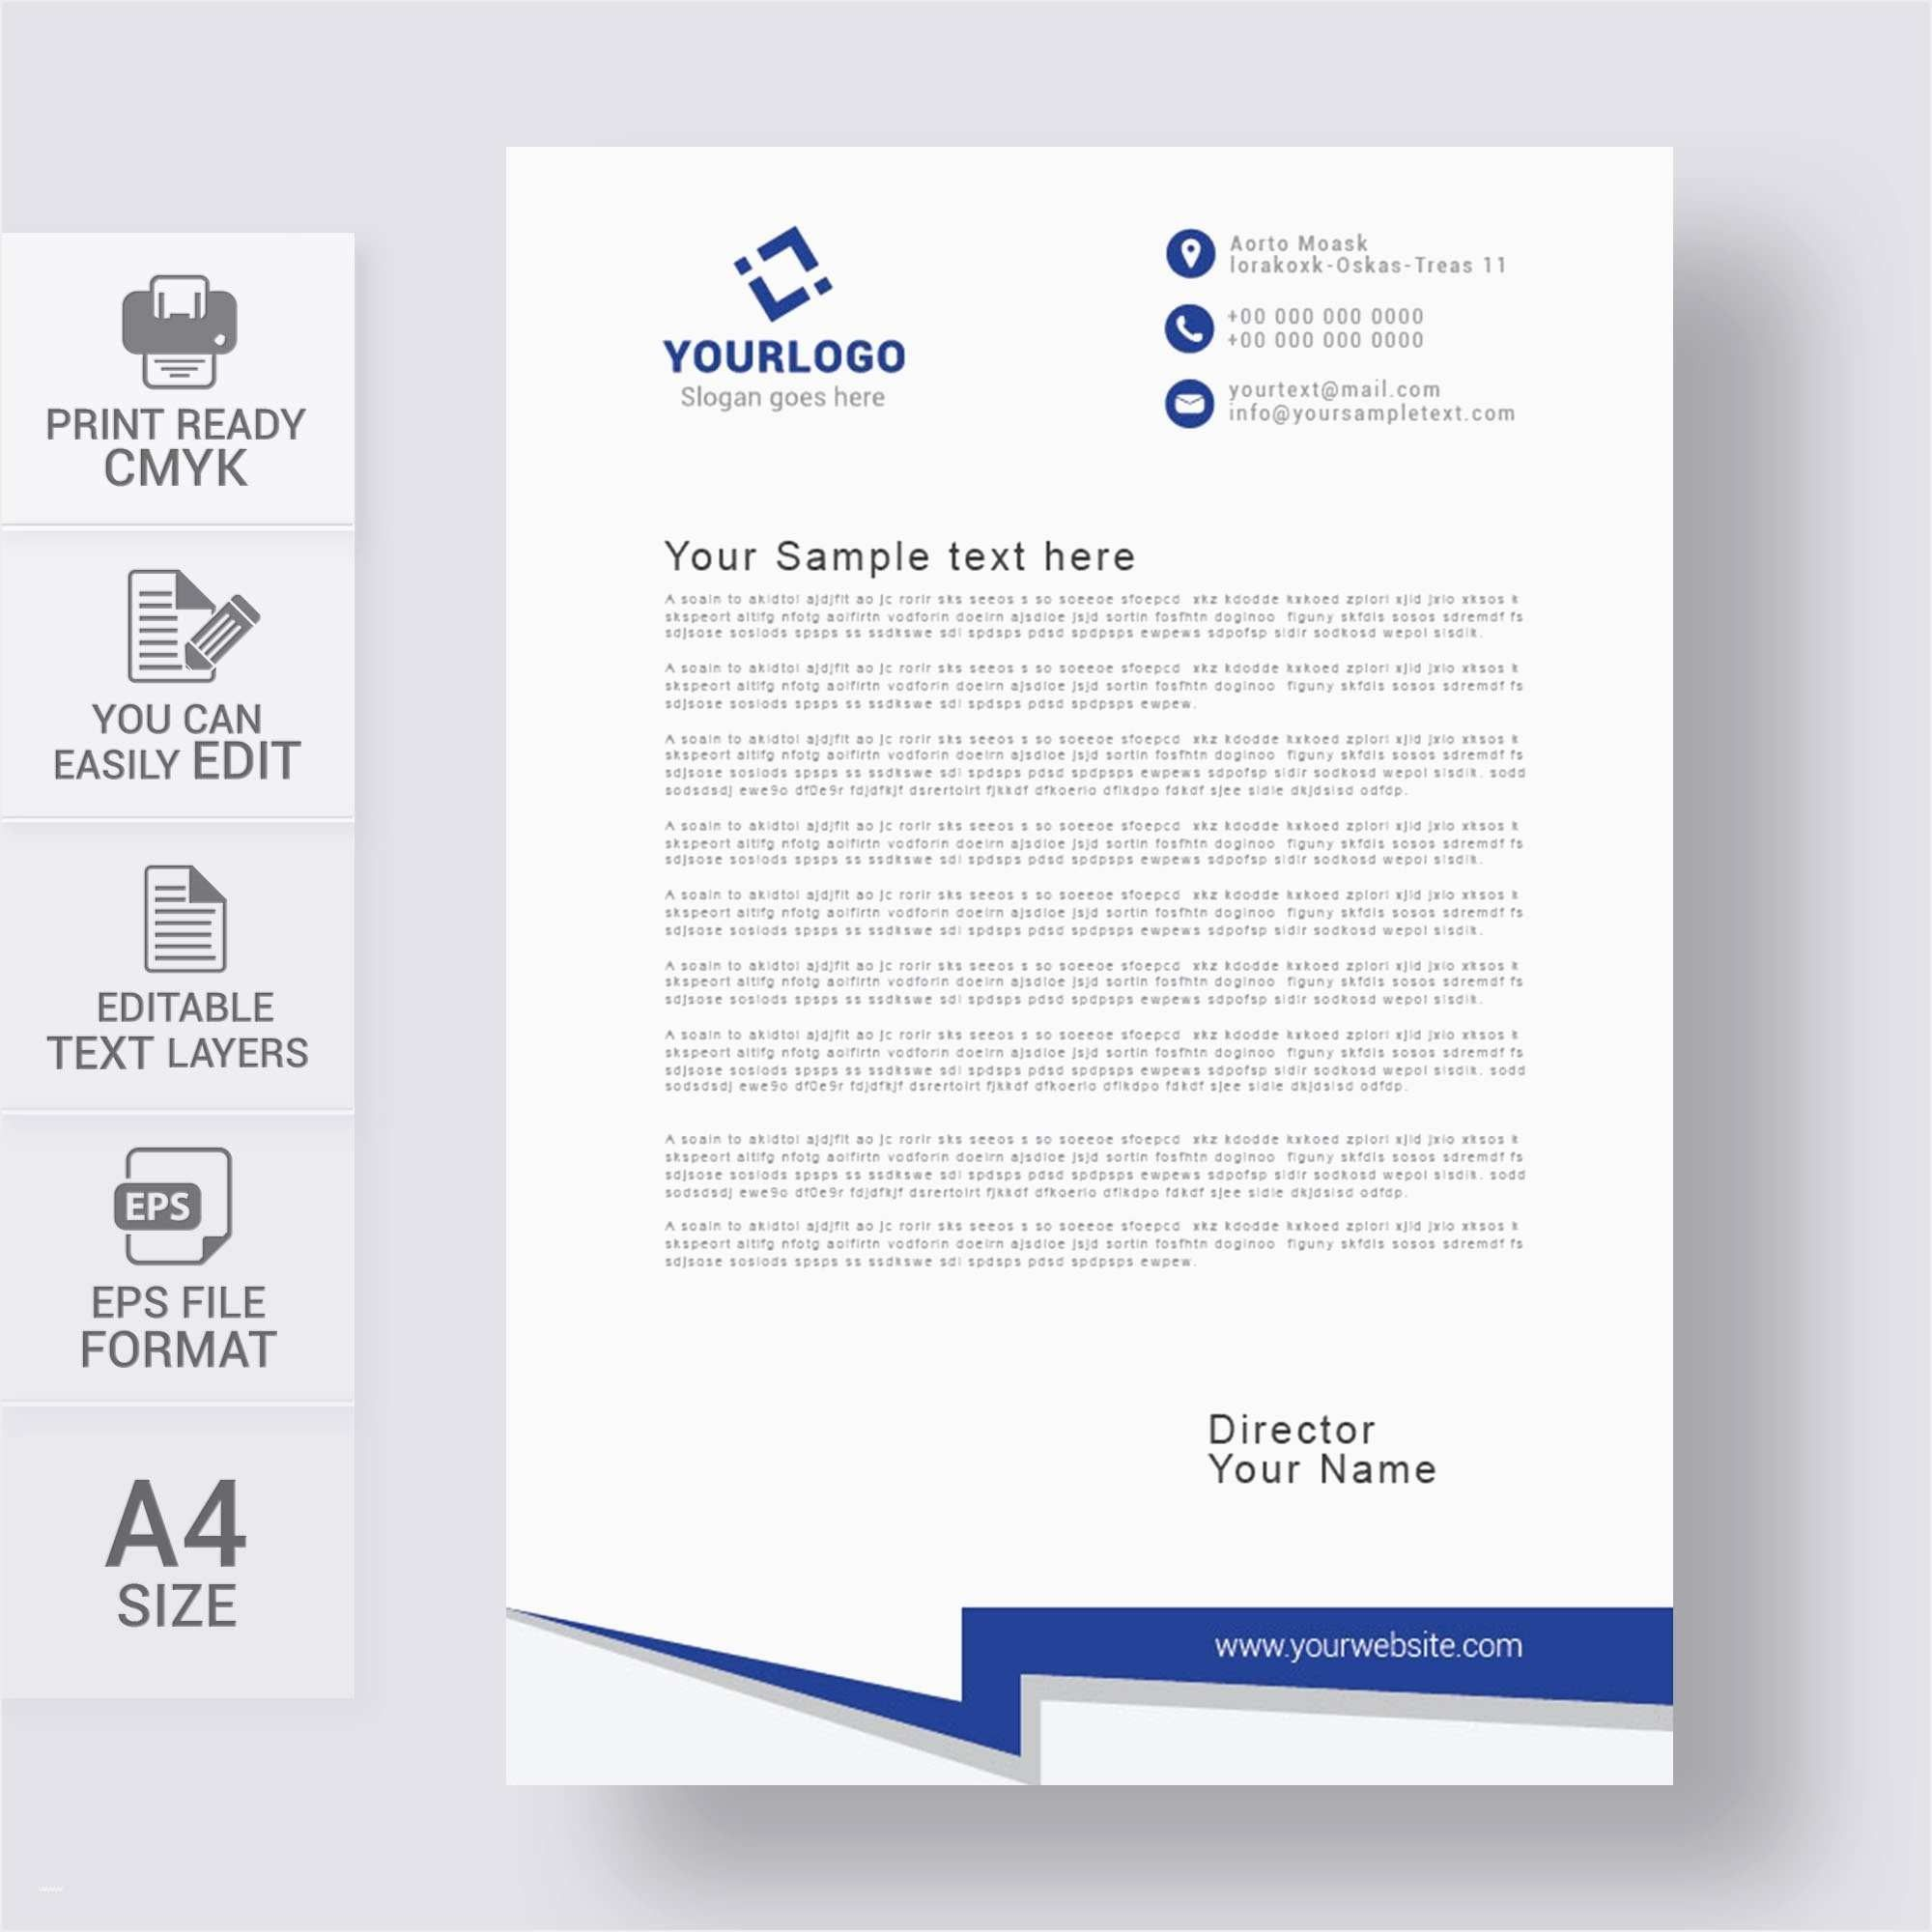 Download Best Of Letterhead Samples For Advocates Lettersample Letterformat Resu Company Letterhead Template Letterhead Template Company Letterhead Examples